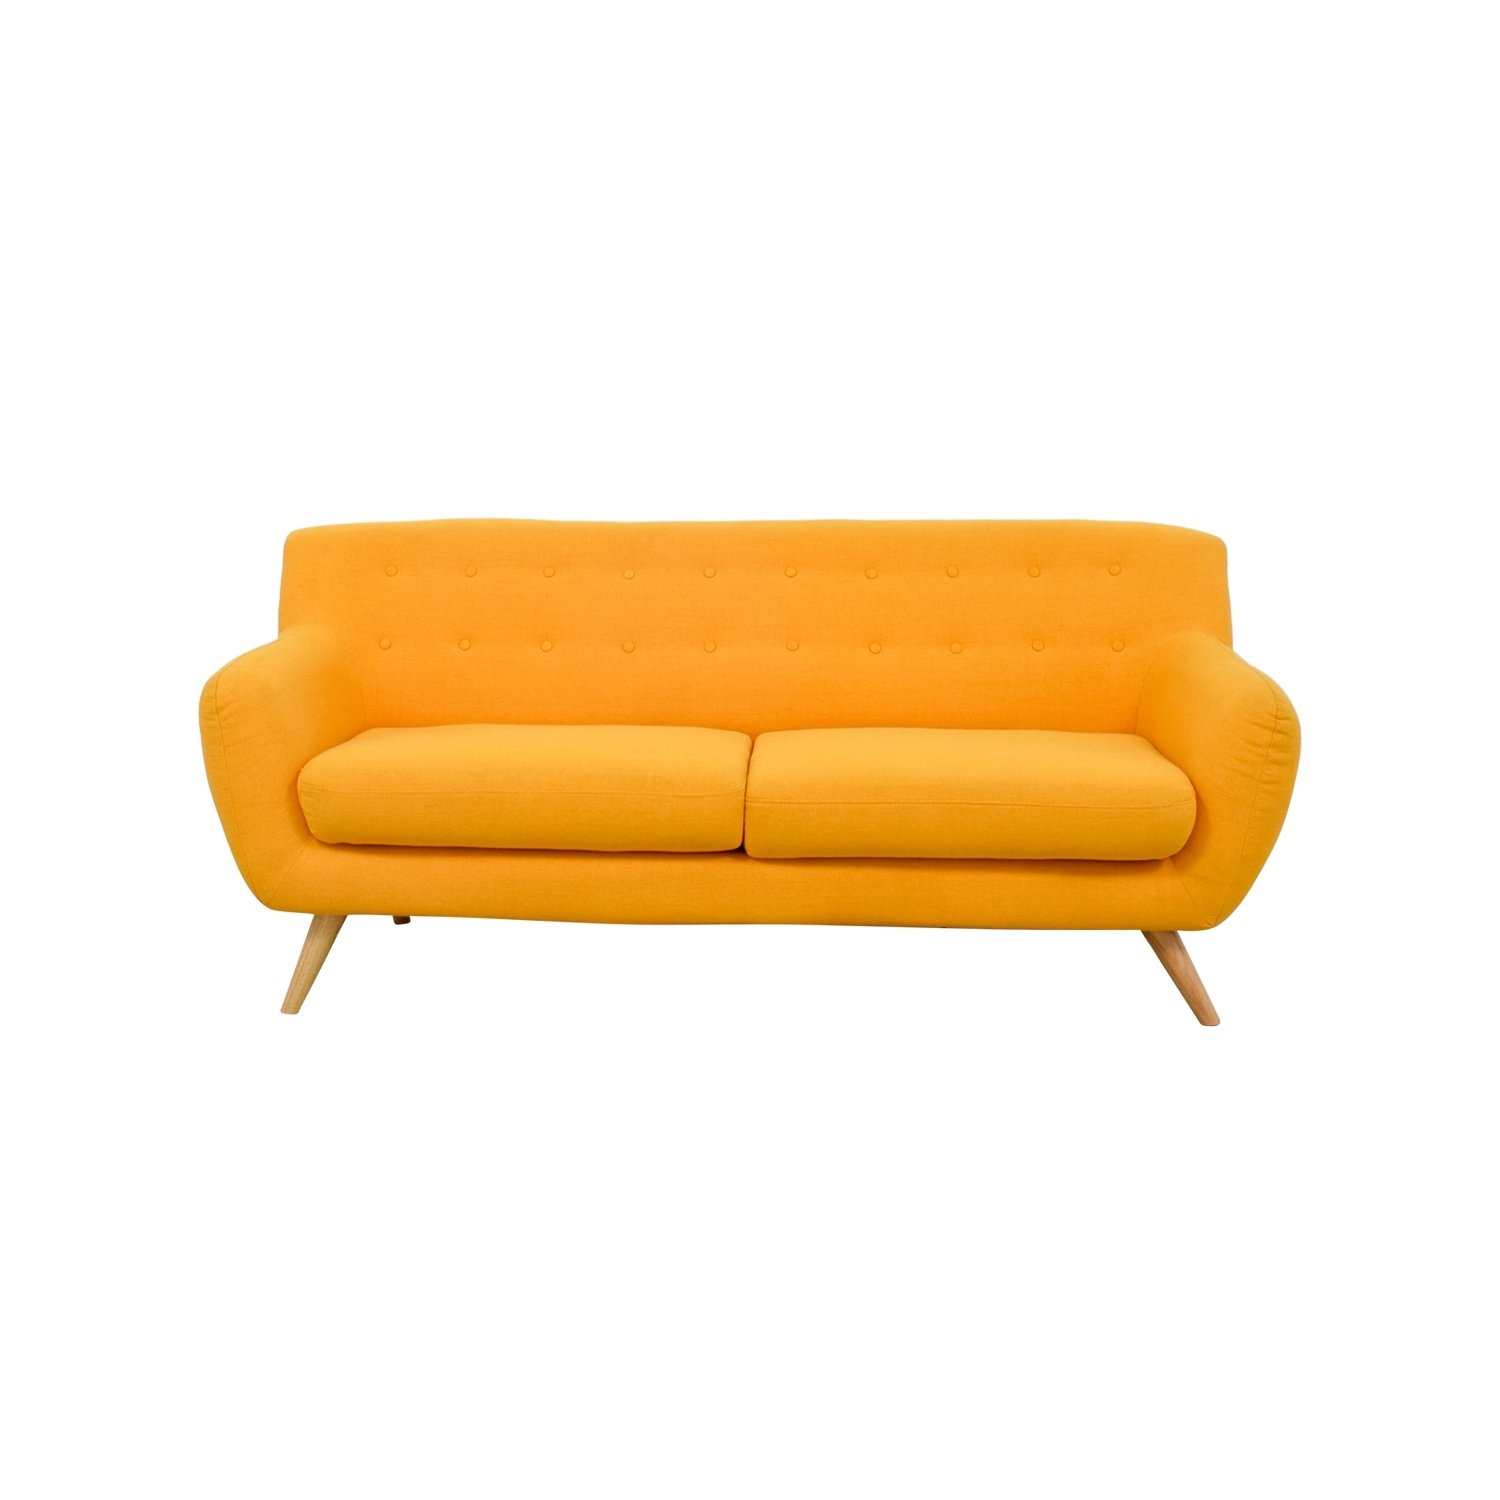 Fashionable Home Decor : 42 Off Mustard Yellow Sofa Sofas Yellow Sofas Yellow Within Yellow Chintz Sofas (View 4 of 20)